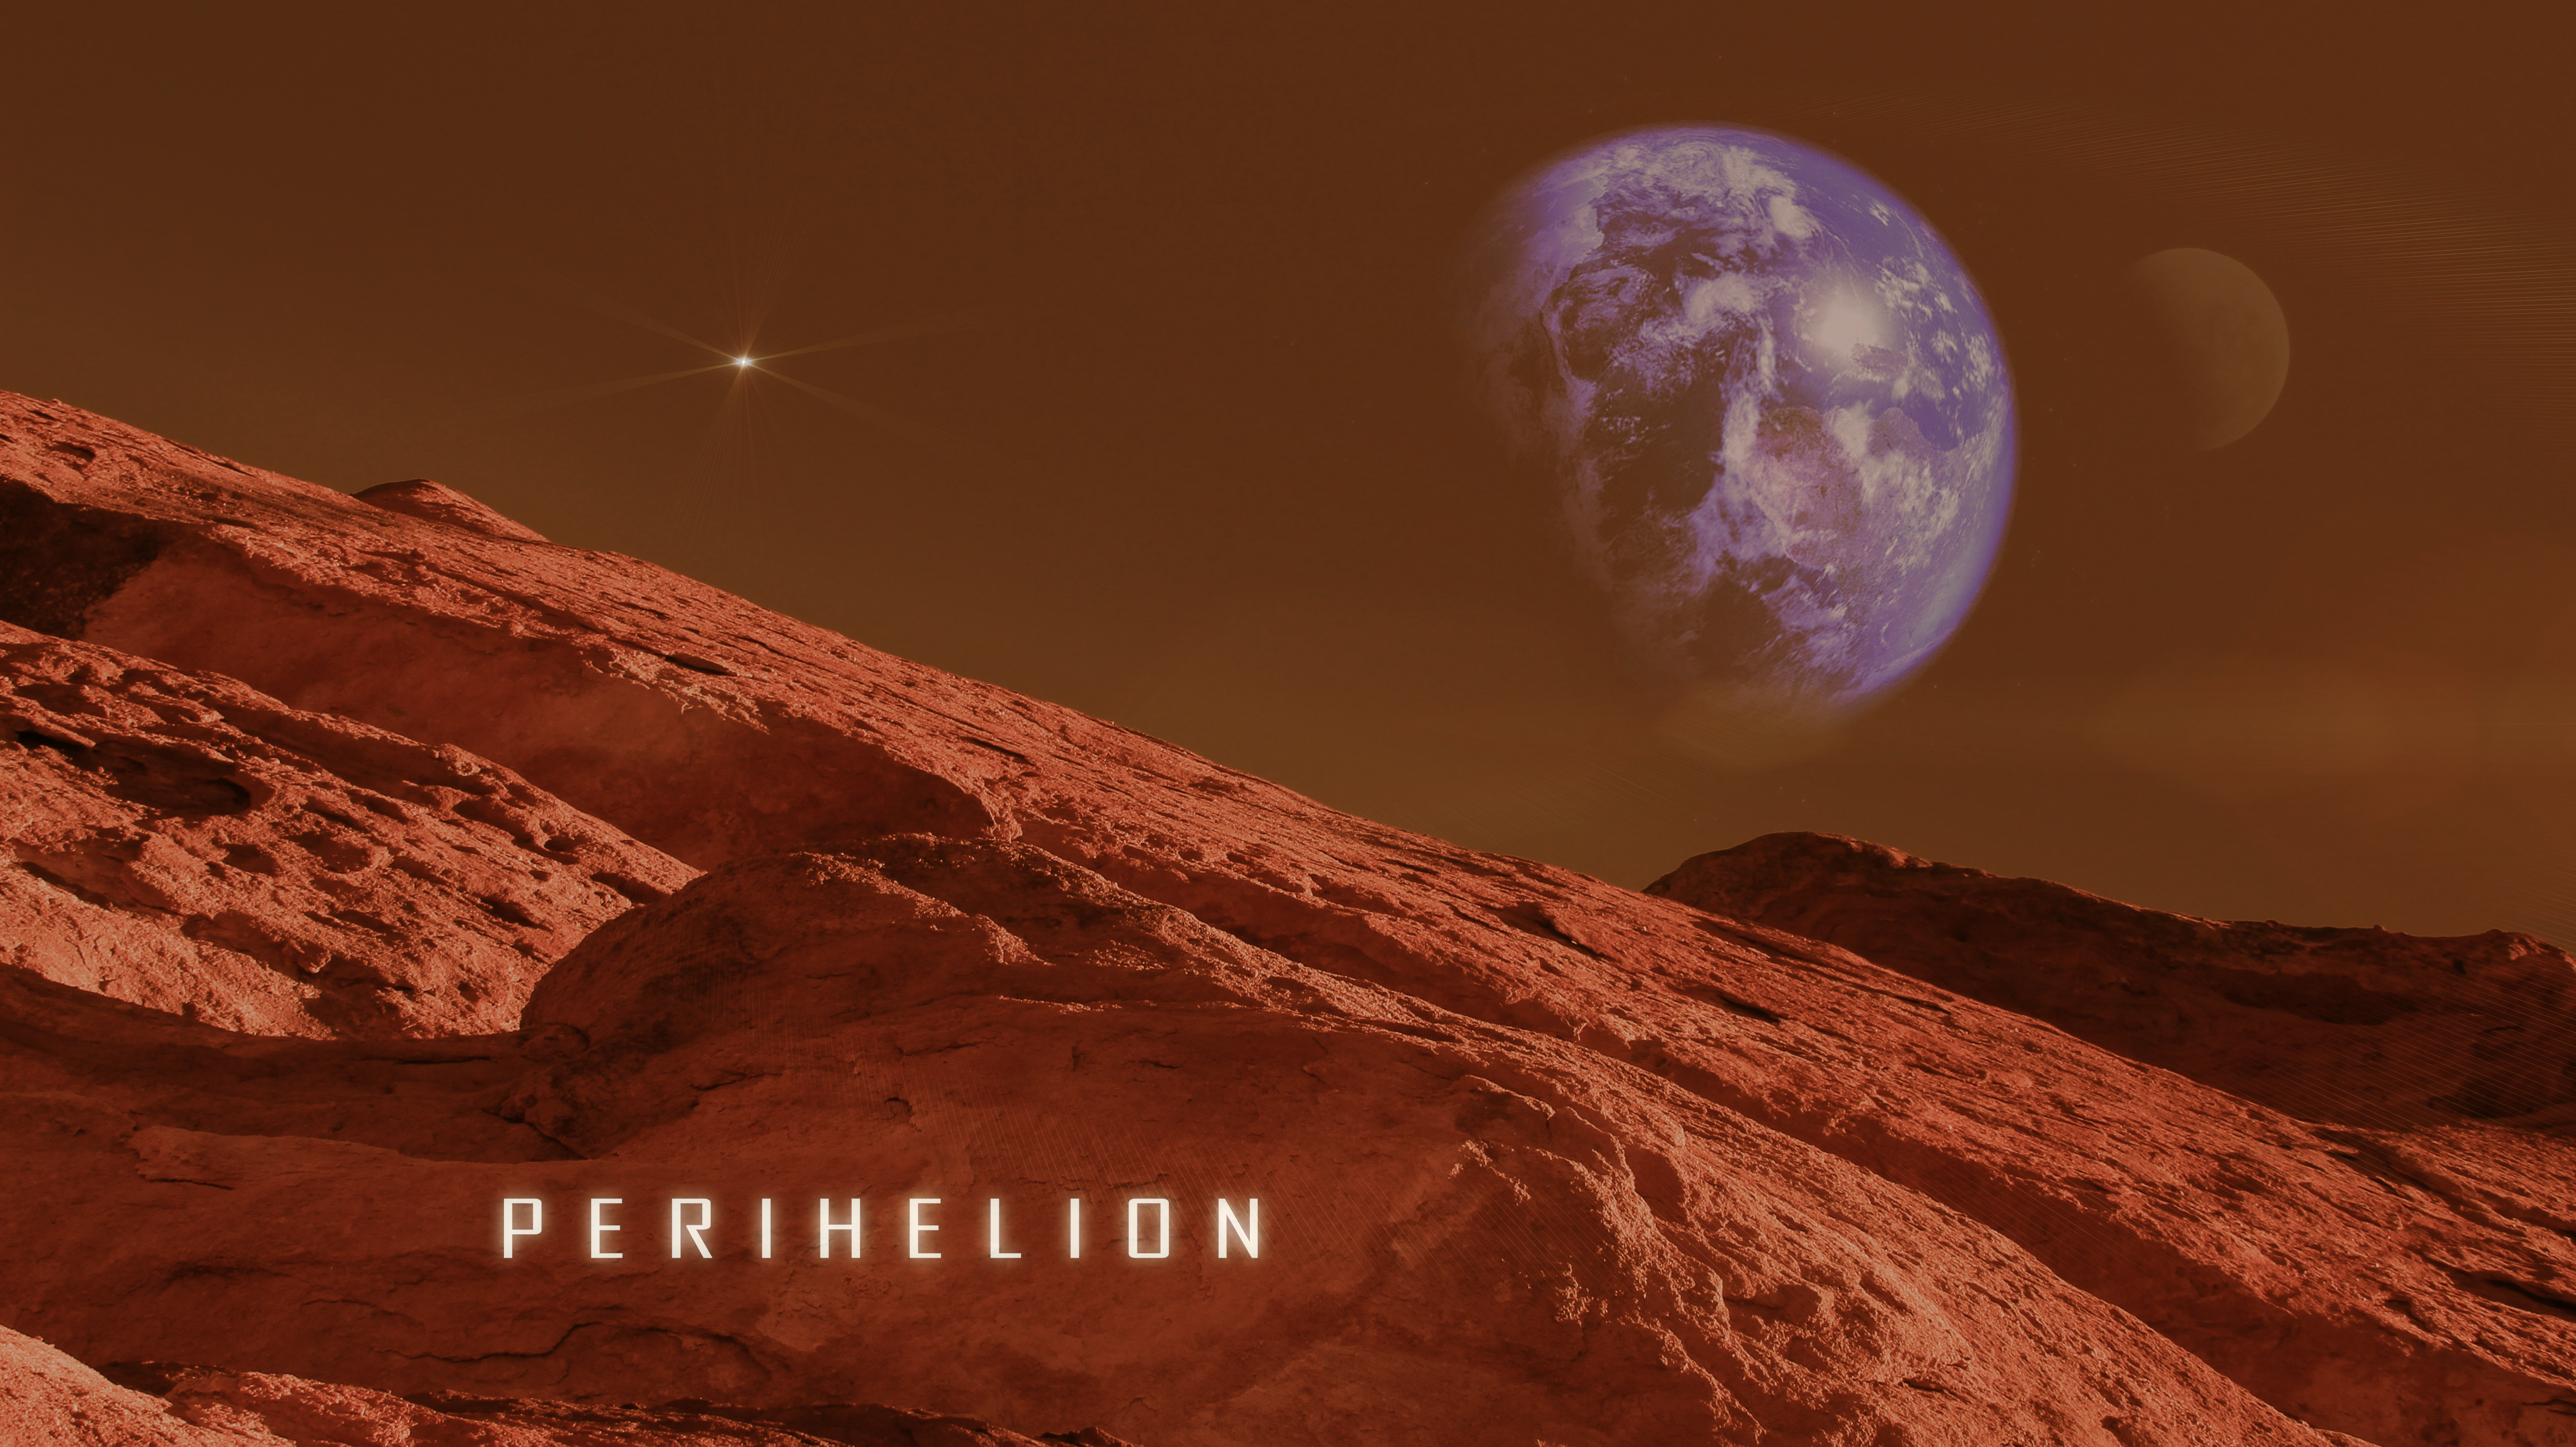 General 5184x2912 red planet universe space Earth Moon stars Mars Core rocks photography graphic design digital digital art nature sun rays space travel Mars Perihelion fantasy art Rock wall dreamscape galaxy mountains